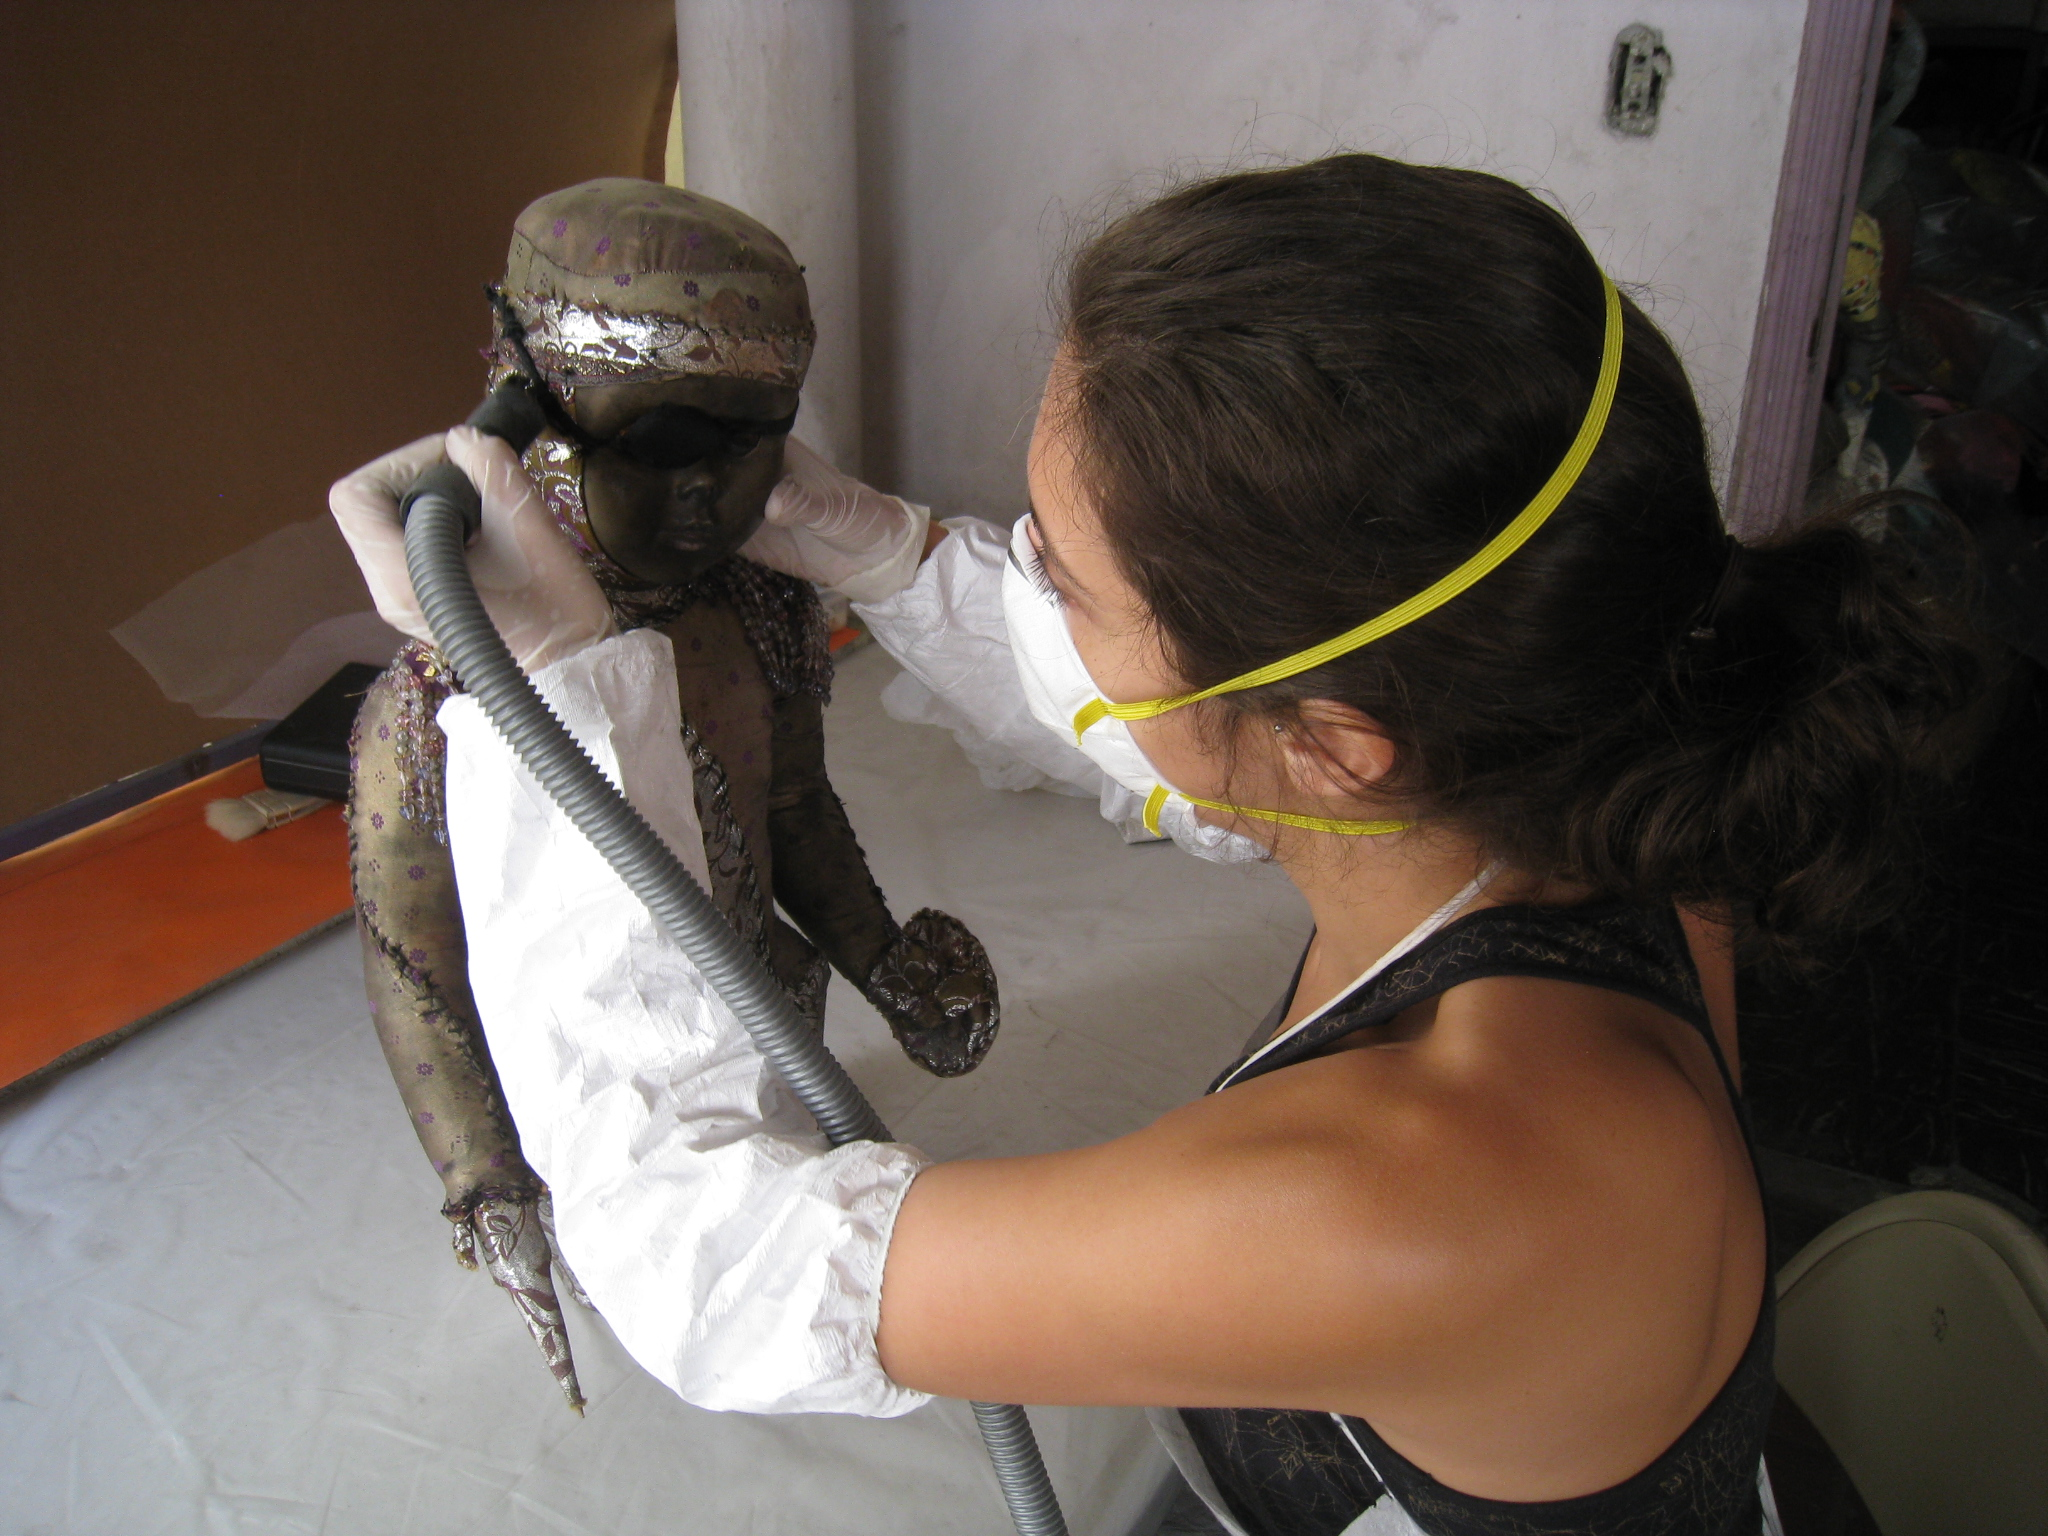 Vacuuming a Bizango doll in the Marianne Lehmann Vodou Collection